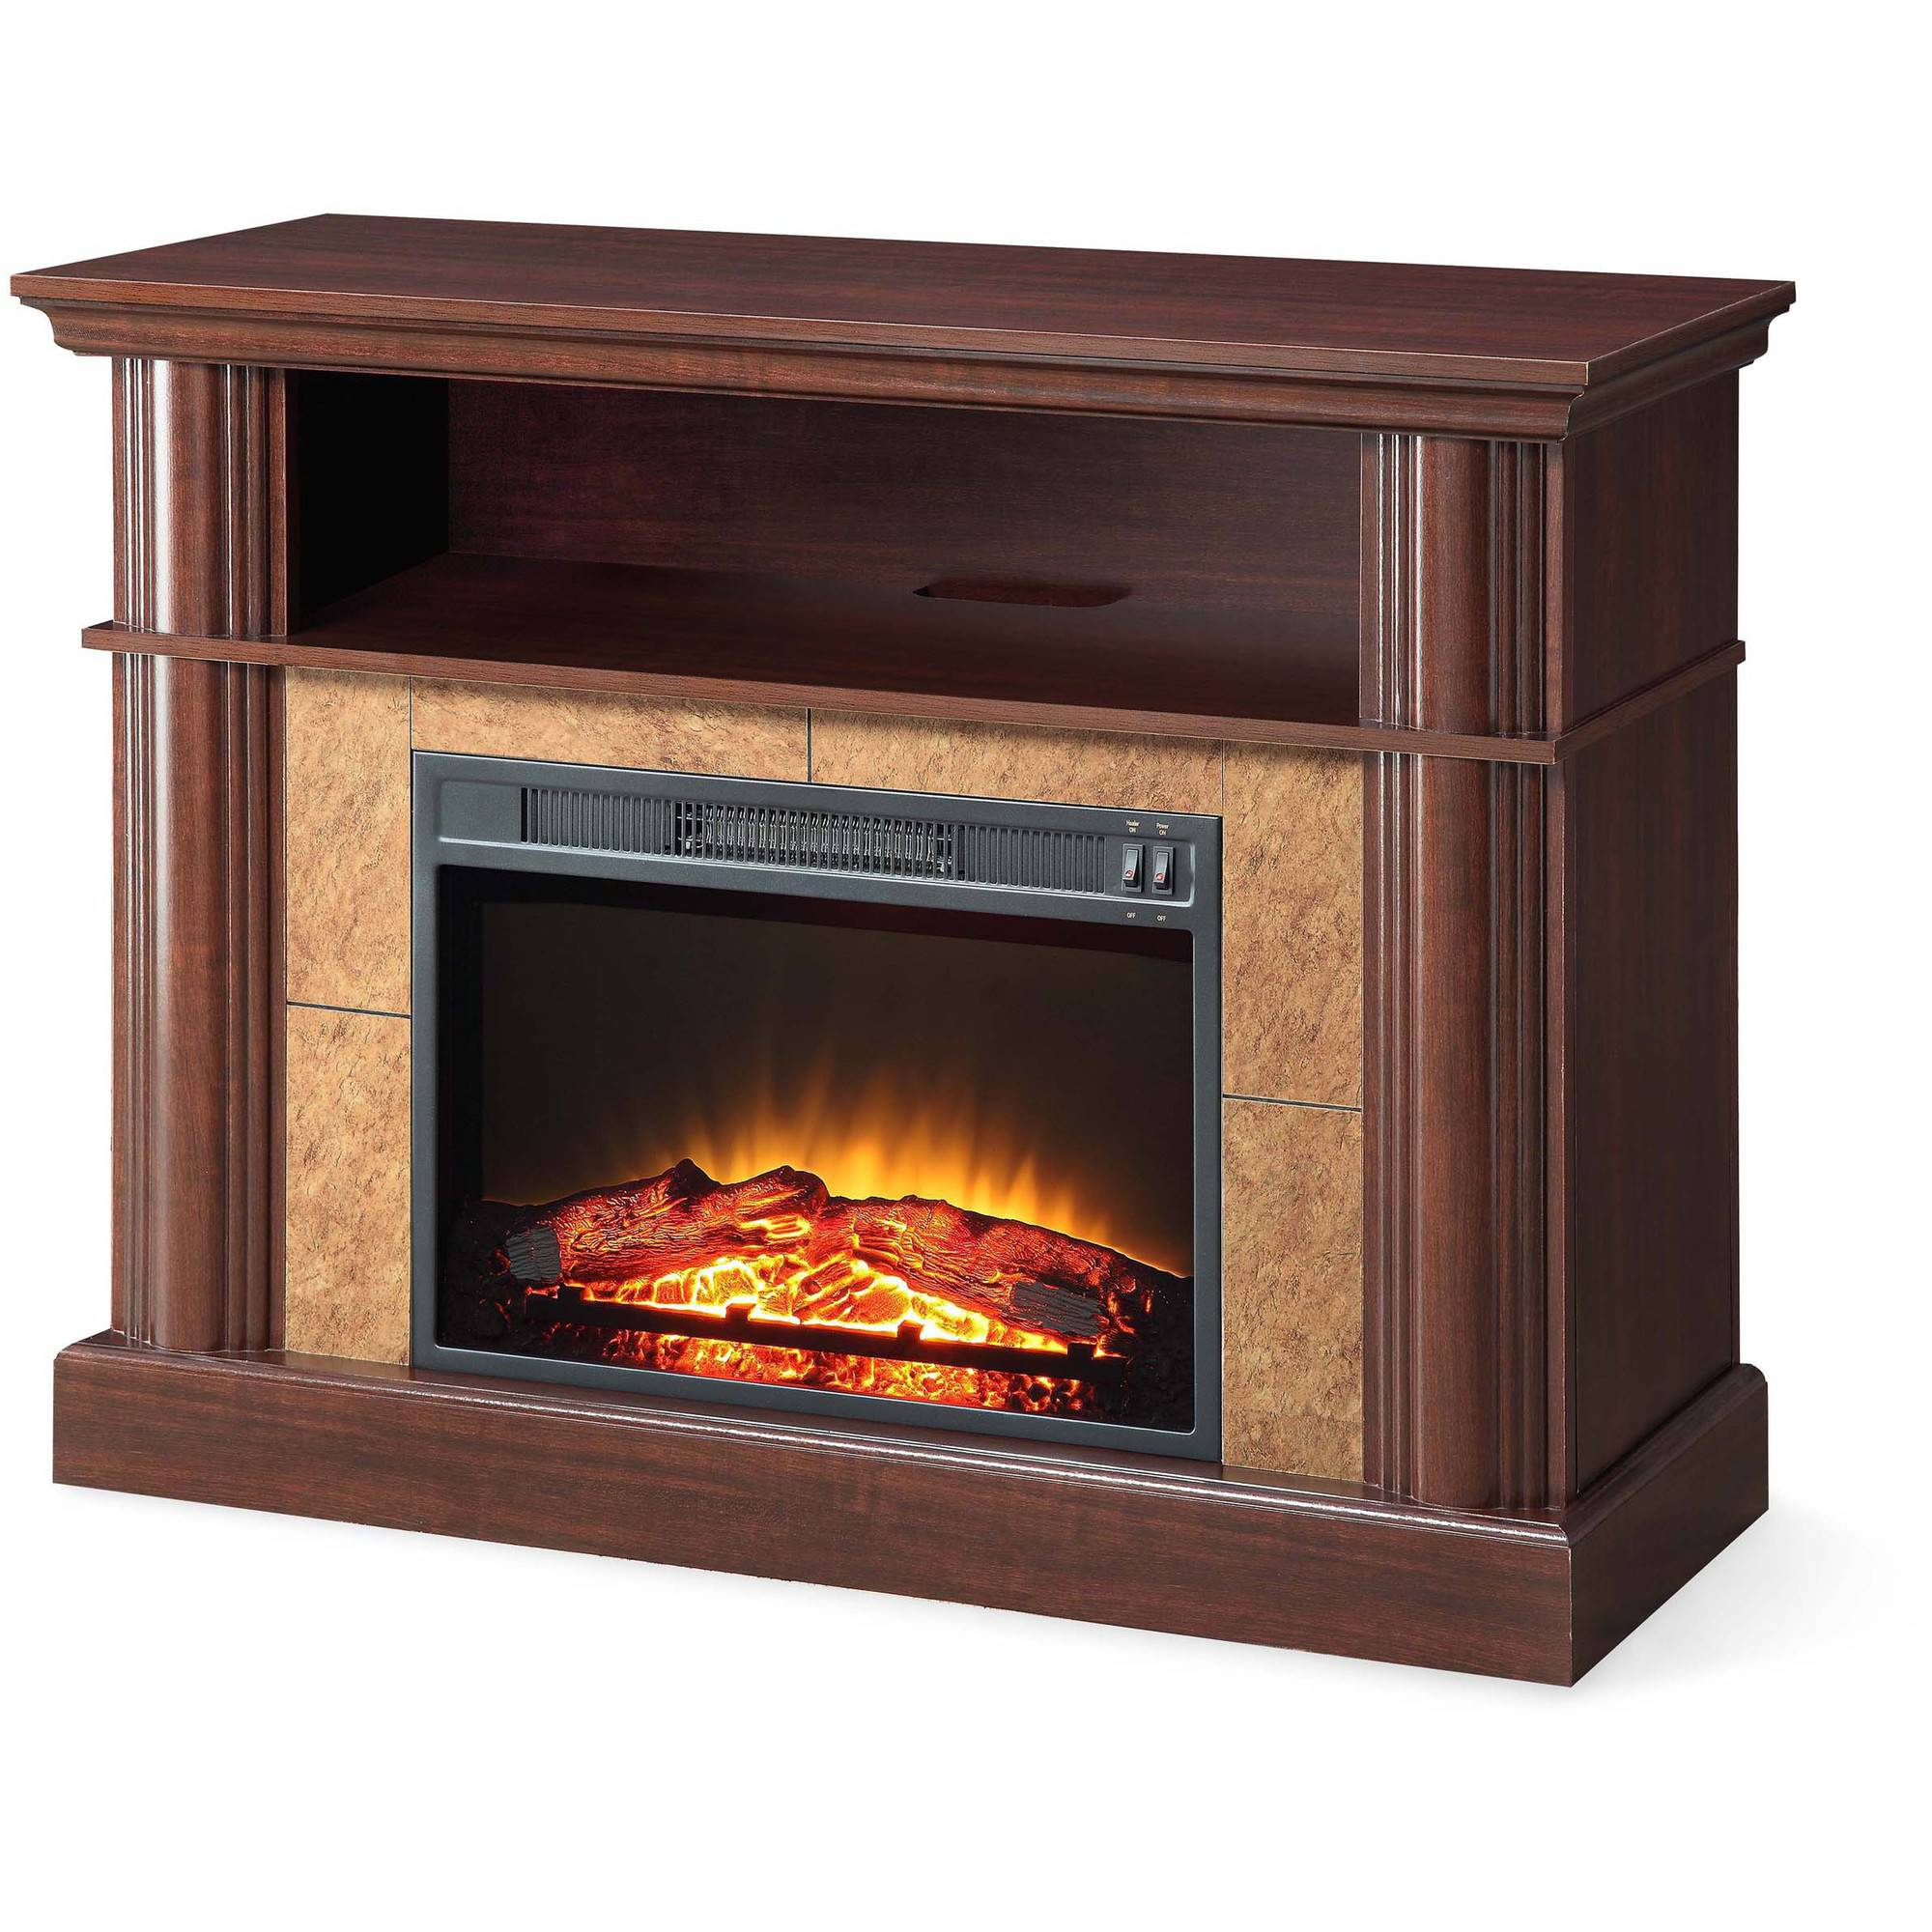 Better homes and fireplace media cherry gardens for tvs up to 54 for Better homes and gardens fireplace